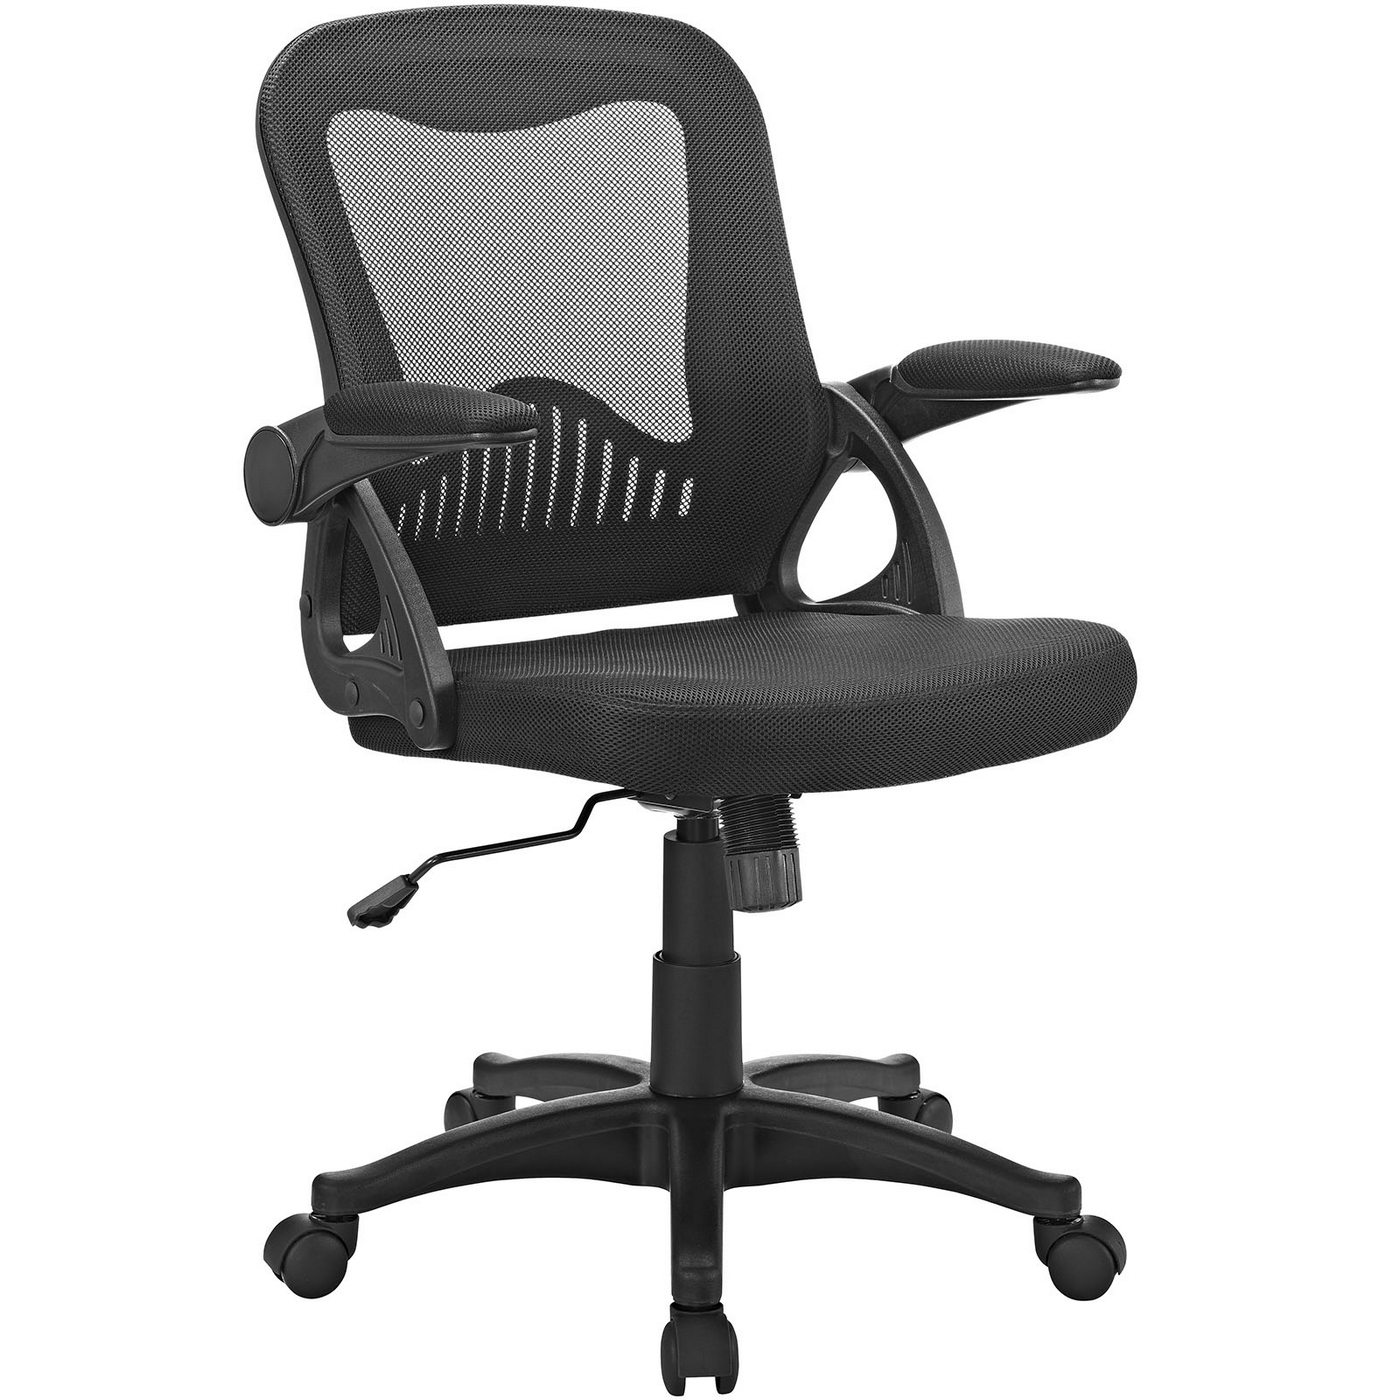 Ergonomic Swivel Office Chair Advance Modern Mesh Back Ergonomic Office Chair W Tilt